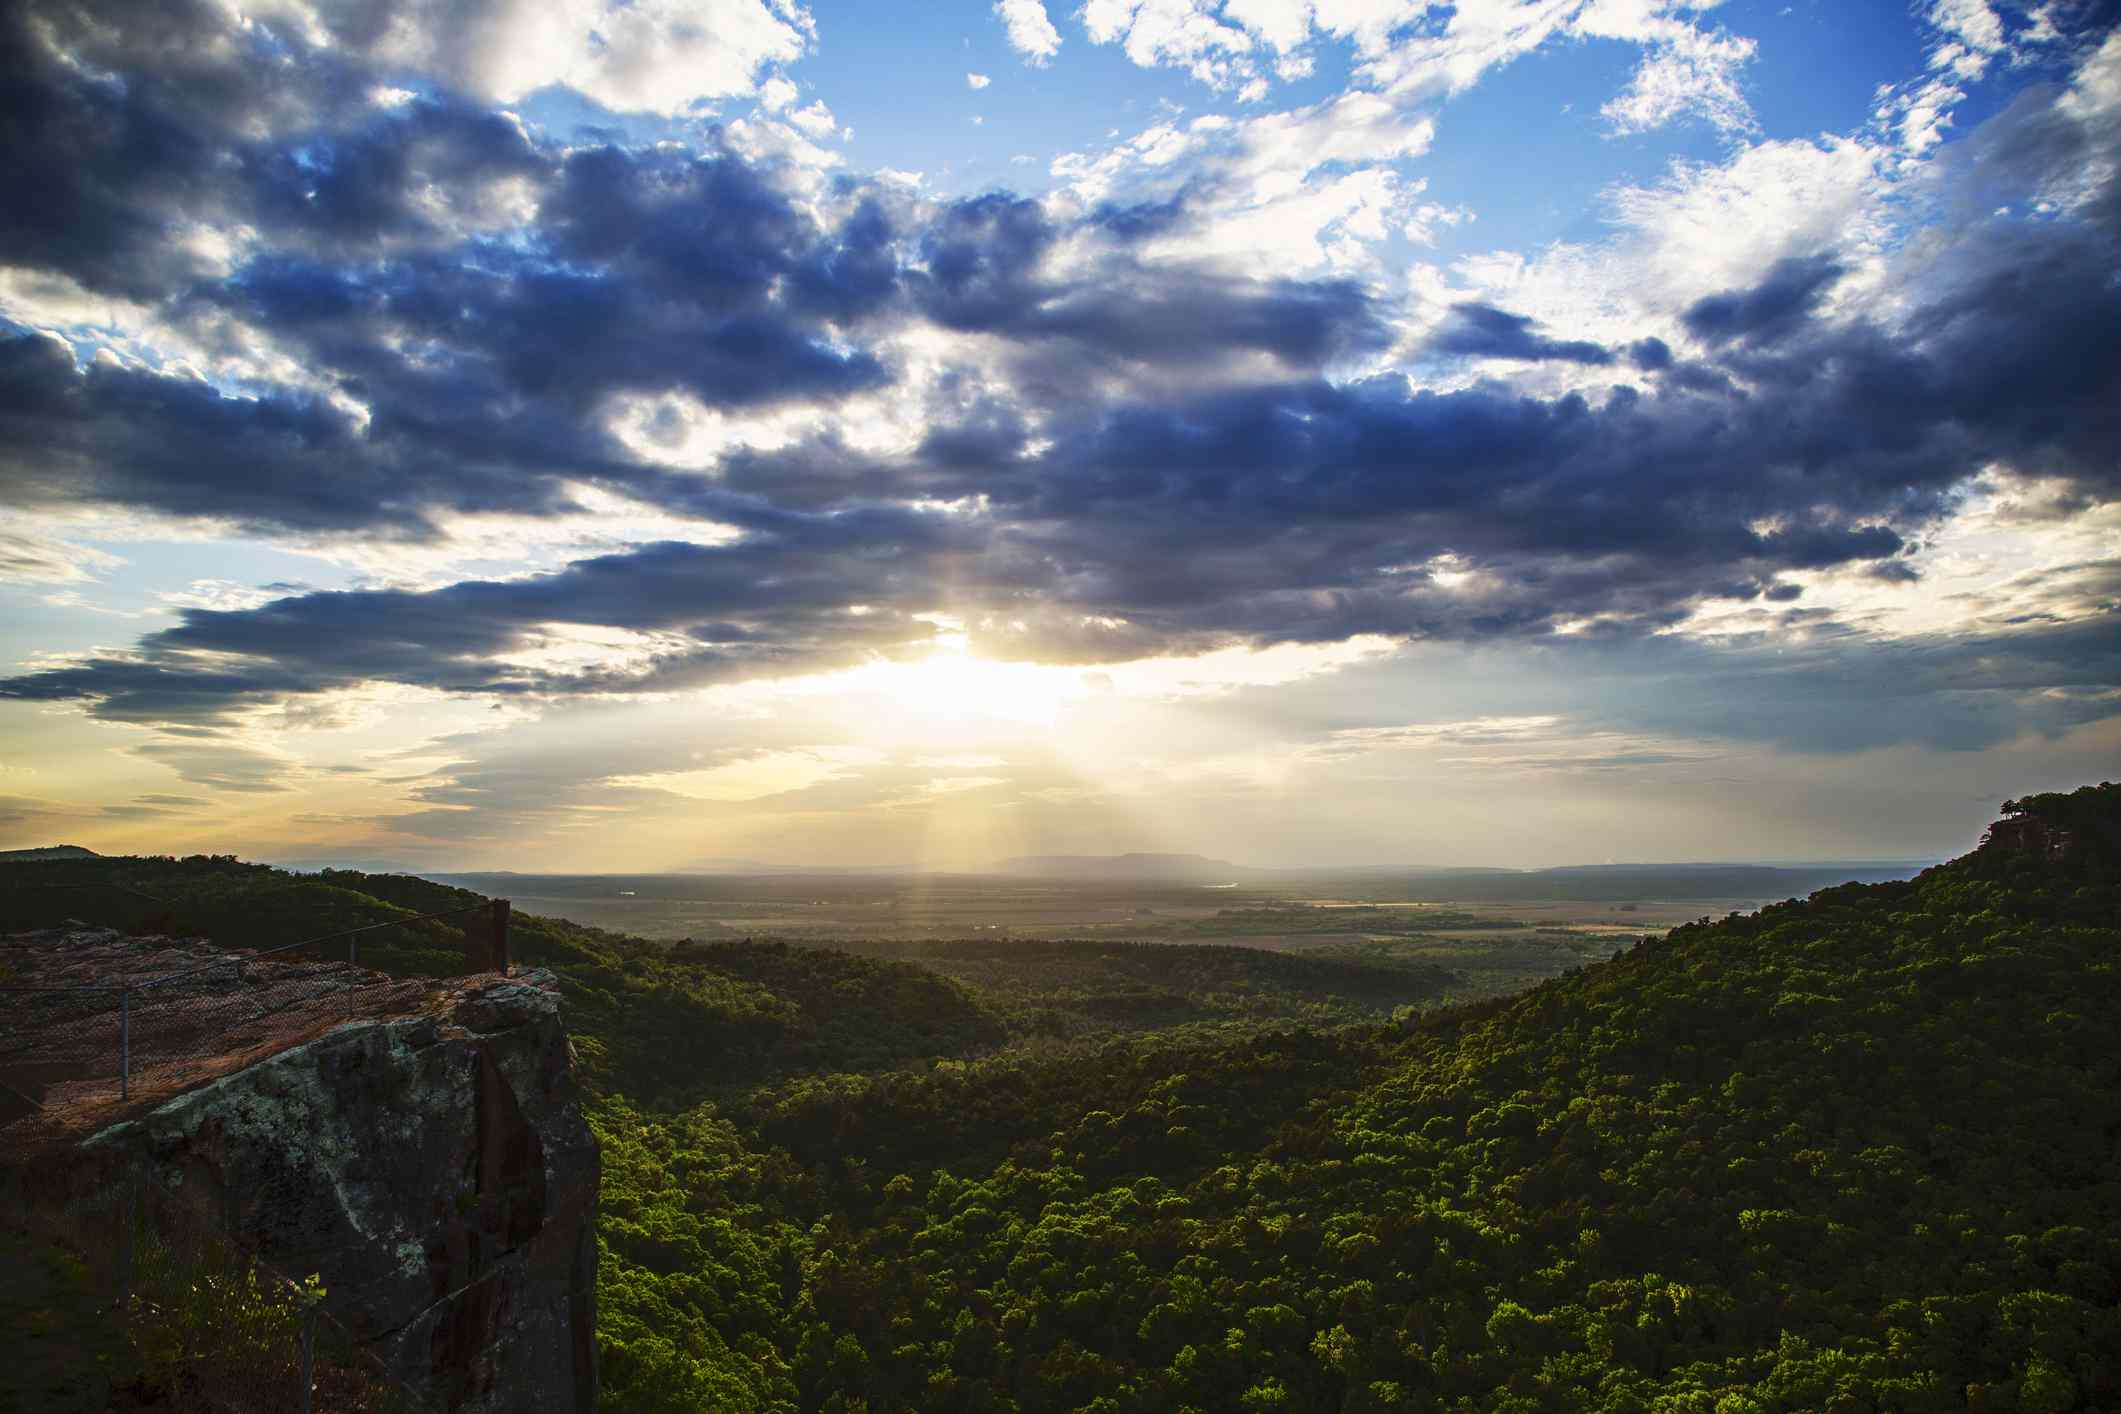 View of sunset over the Arkansas River Valley from Petit Jean Mountain.